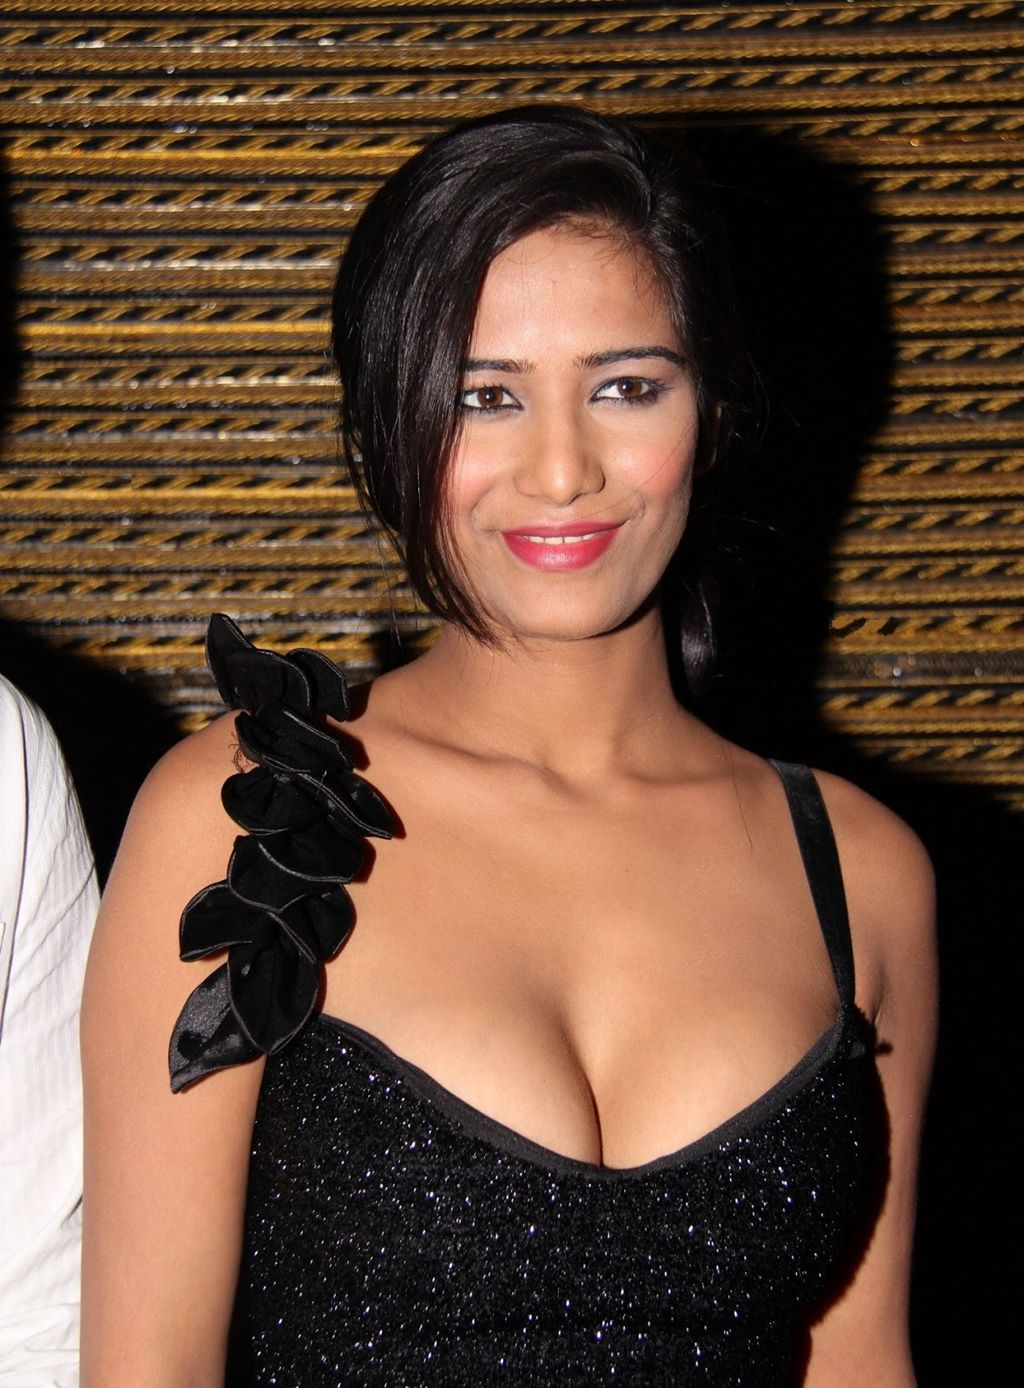 naughty exotic Poonam pandey hot photos gallery in black